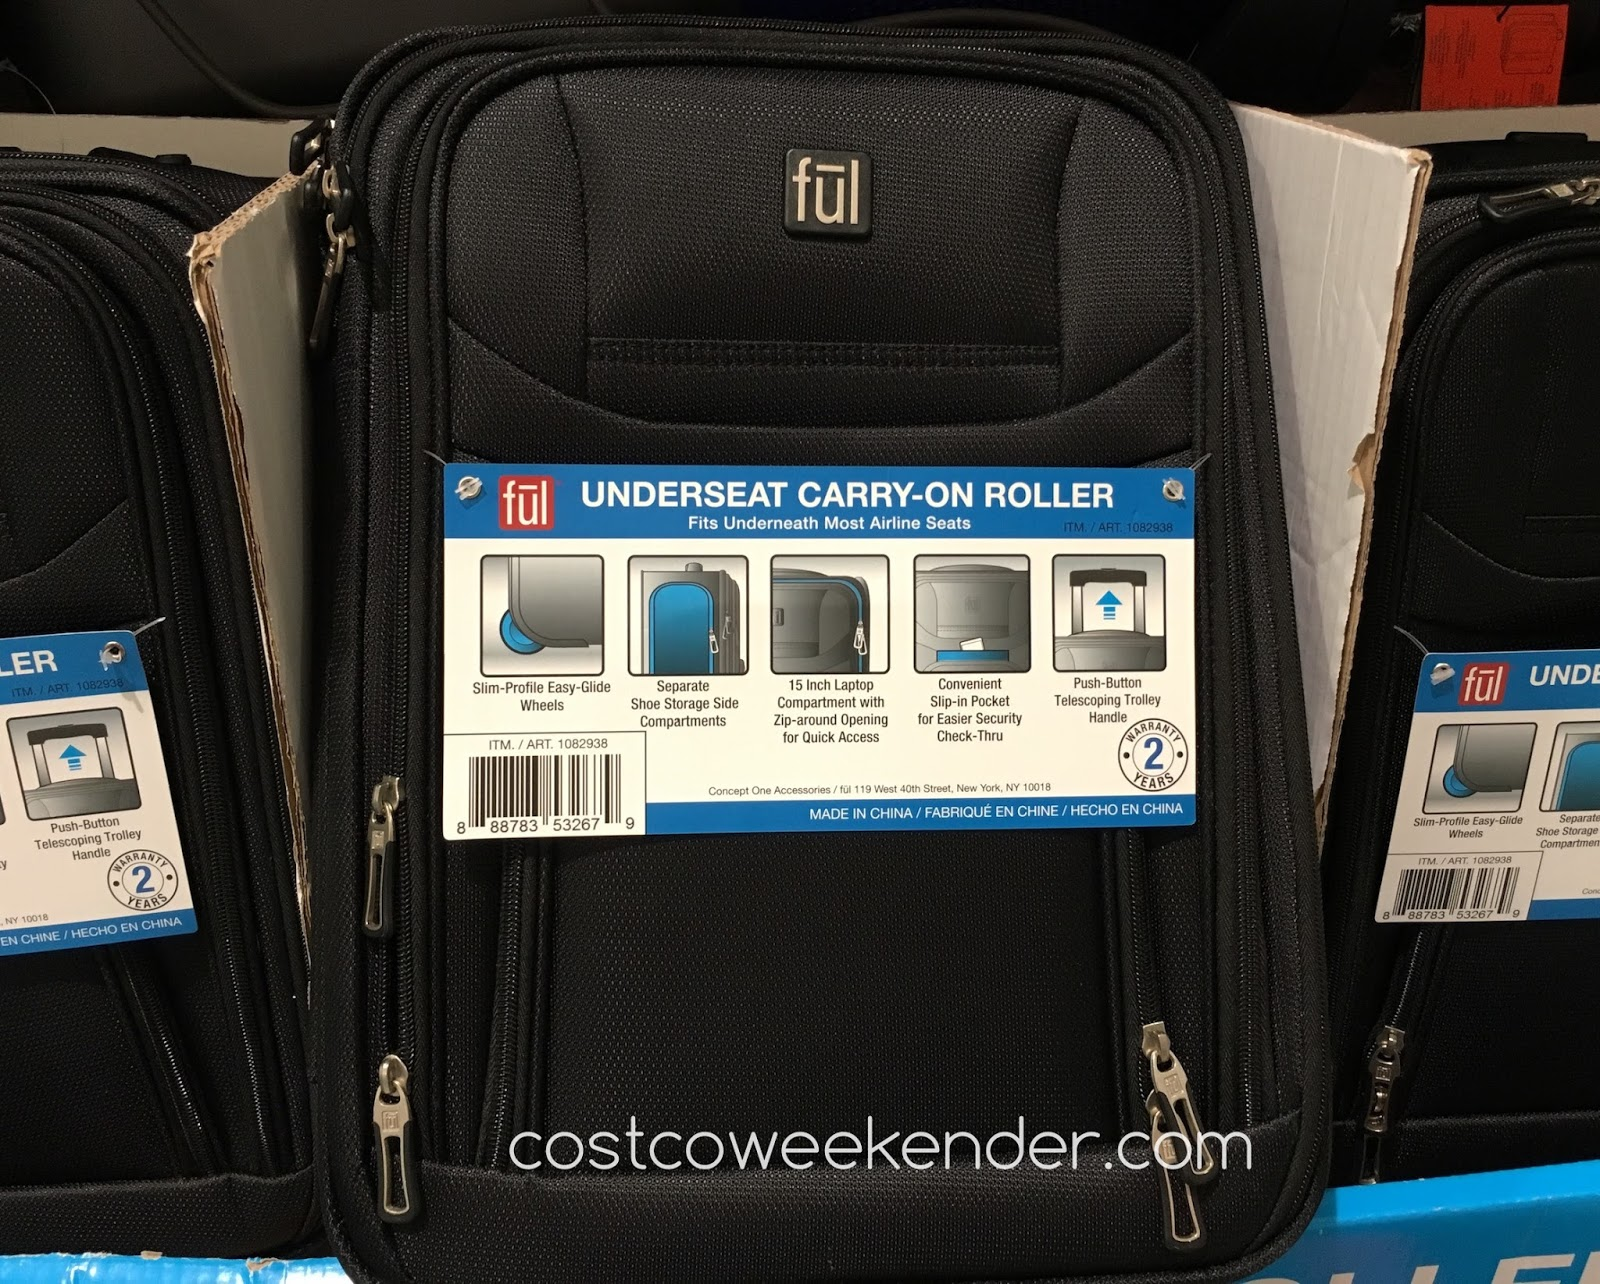 Ful Underseat Carry-on Roller Luggage - Fits underneath most airline seats